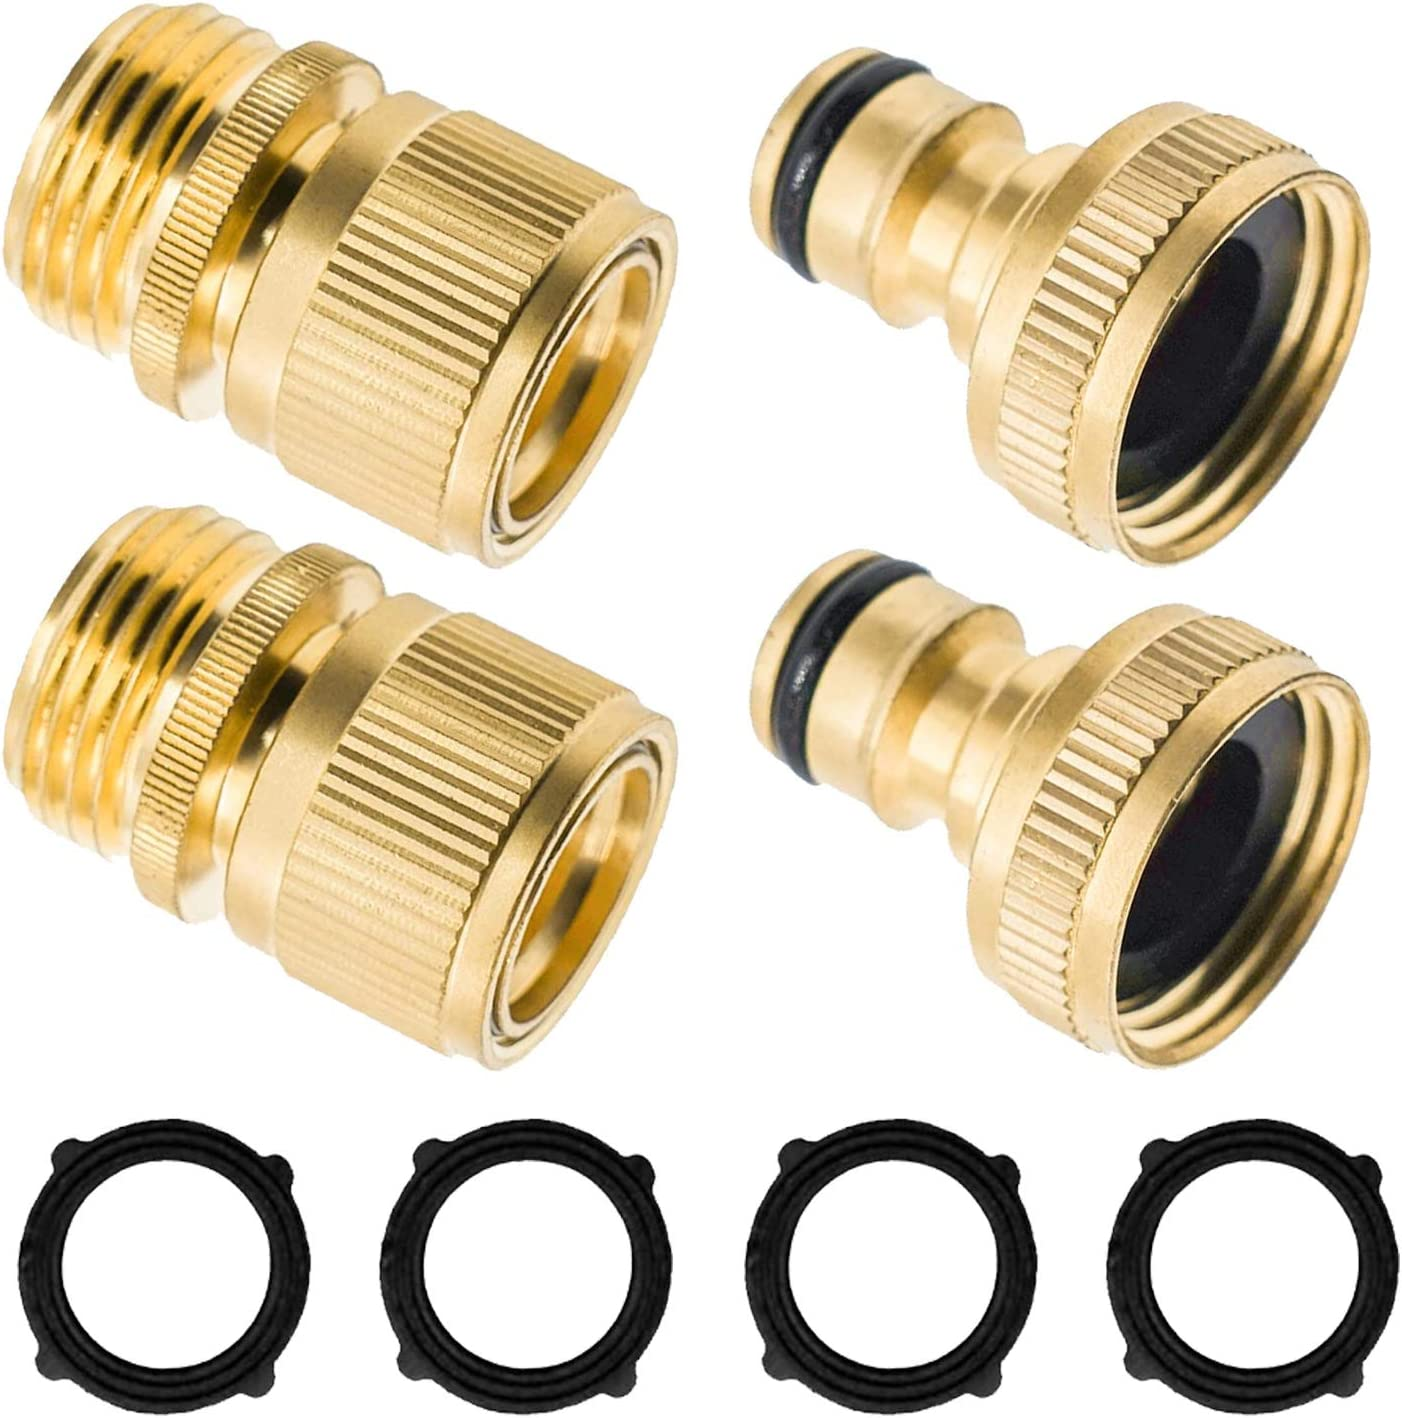 Xiny Tool Garden Hose Quick Connector, Solid Brass Quick Connector and Disconnector 3/4 Inch GHT Male and Female Water Hose Fittings (2 Set)